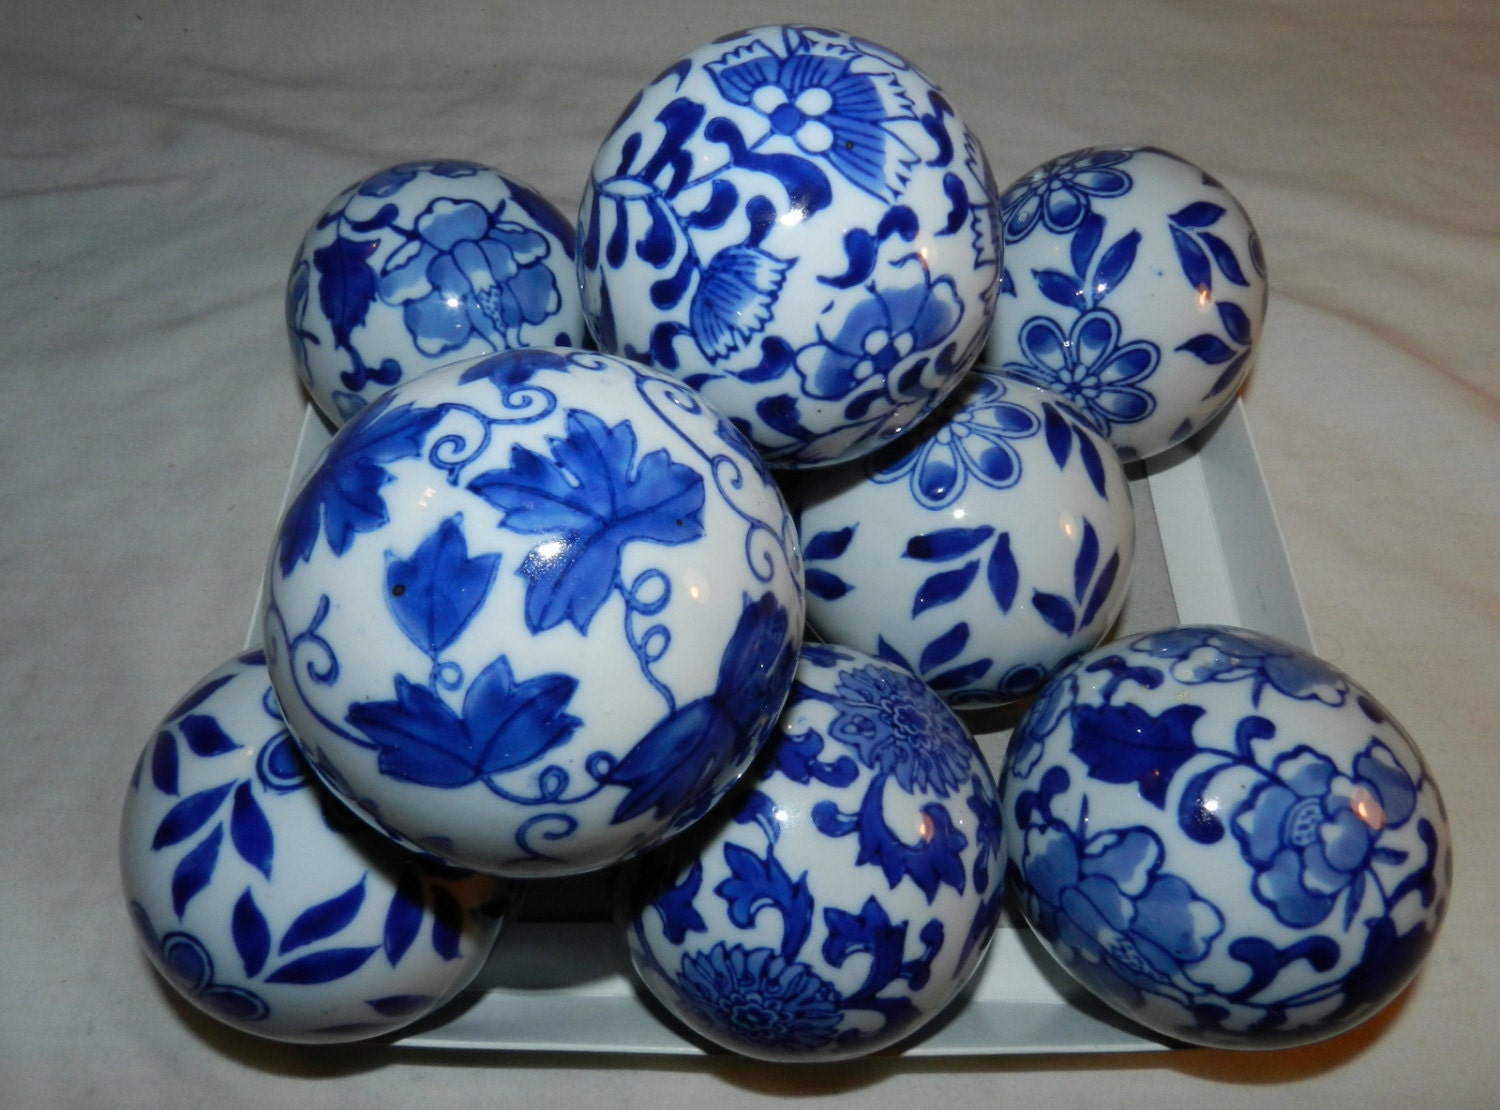 Lot of cobalt blue and white decorative carpet balls for